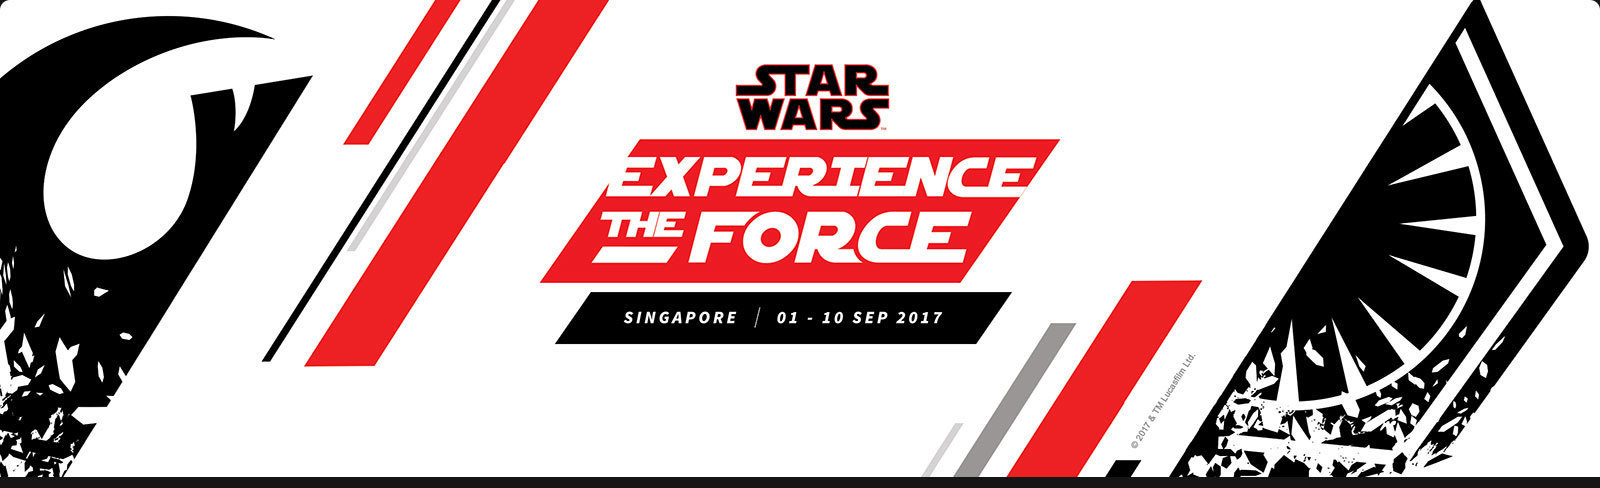 STAR WARS: EXPERIENCE THE FORCE SINGAPORE